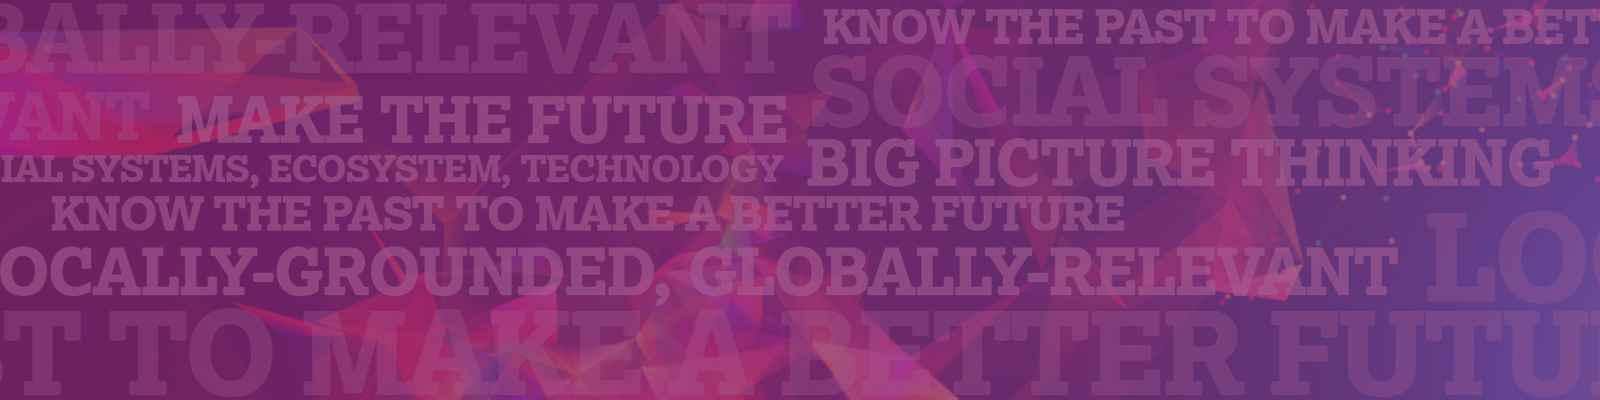 Abstract Text Image: Make the Future Better, Globally relevant, Locally Grounded, Know the Past,